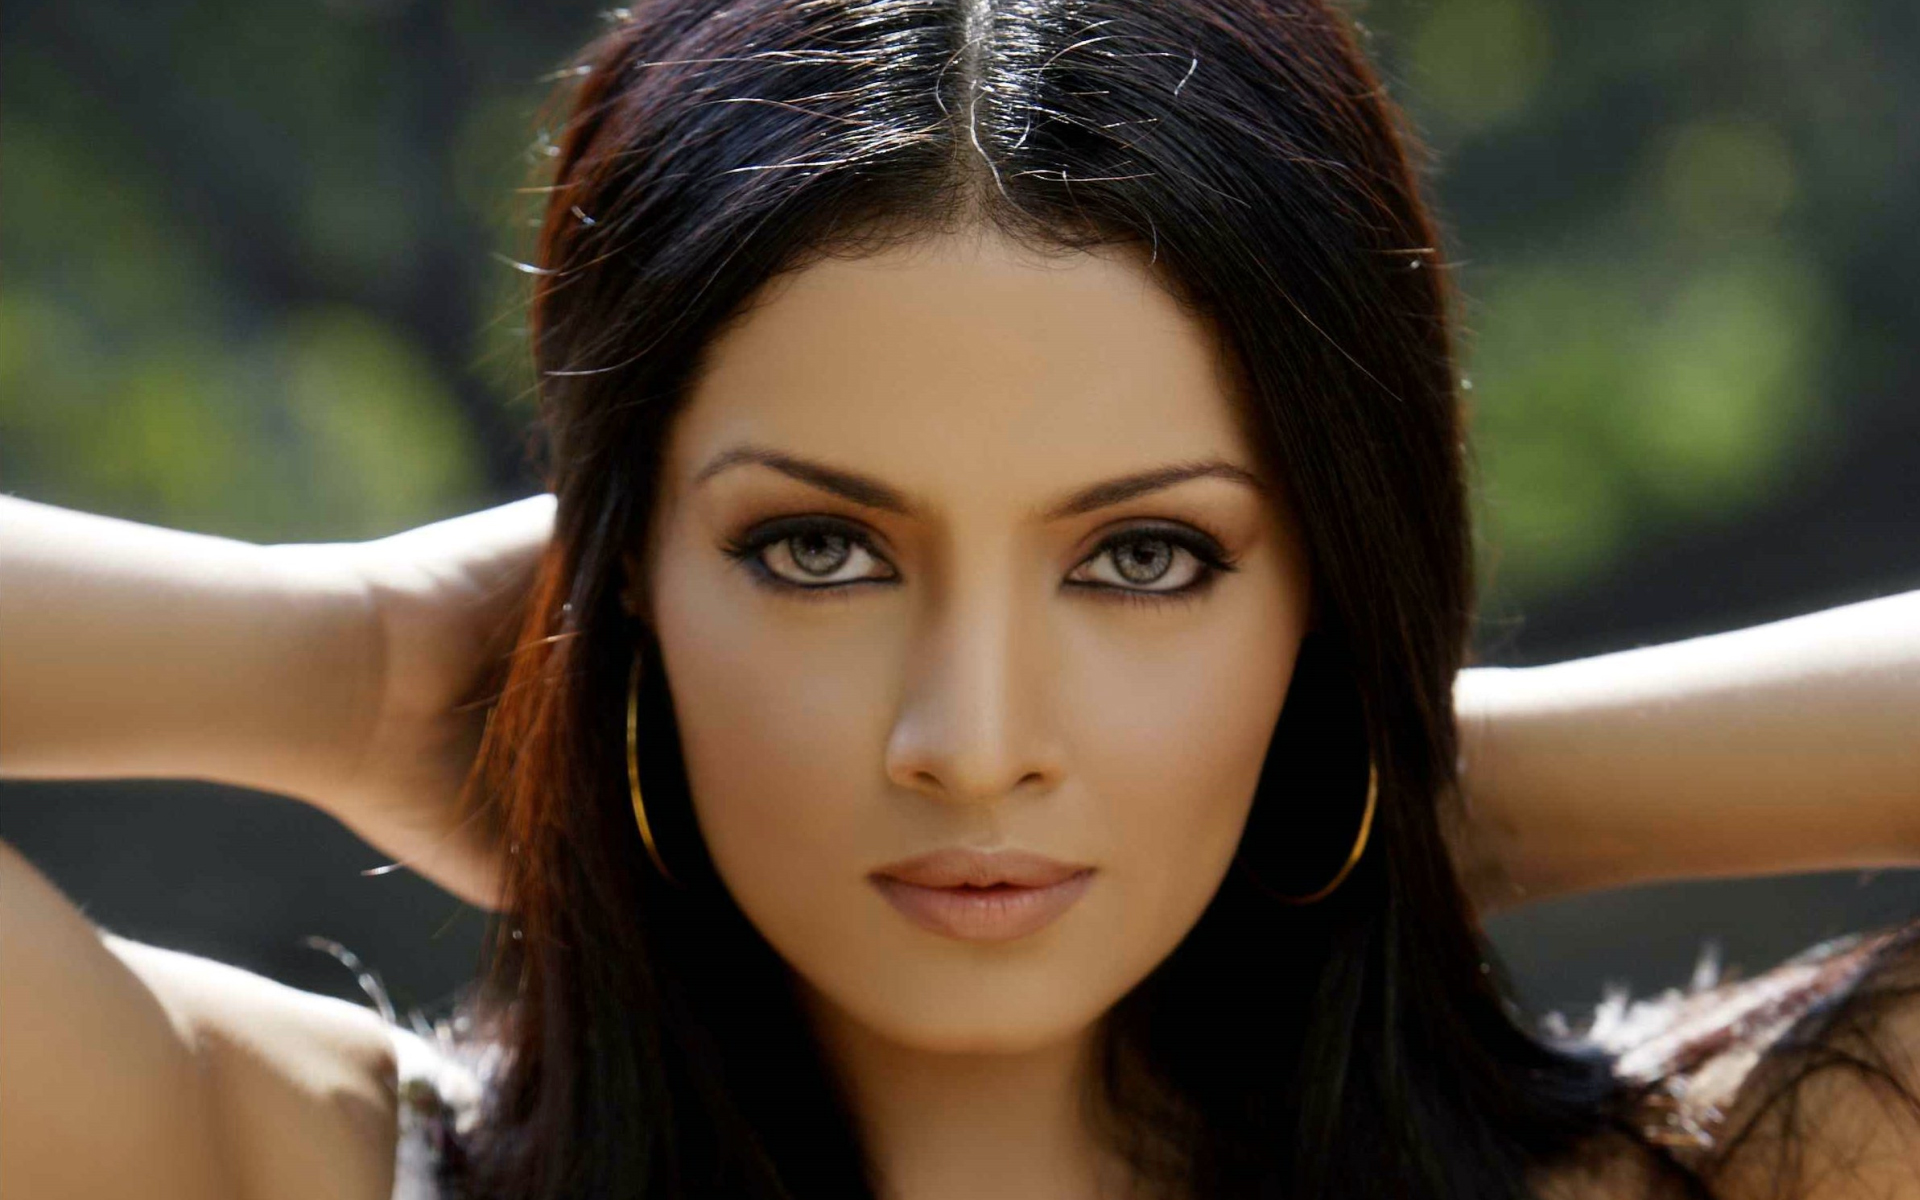 Beautiful Celina Jaitly Eye Look Free Desktop Mobile Hd Background Images